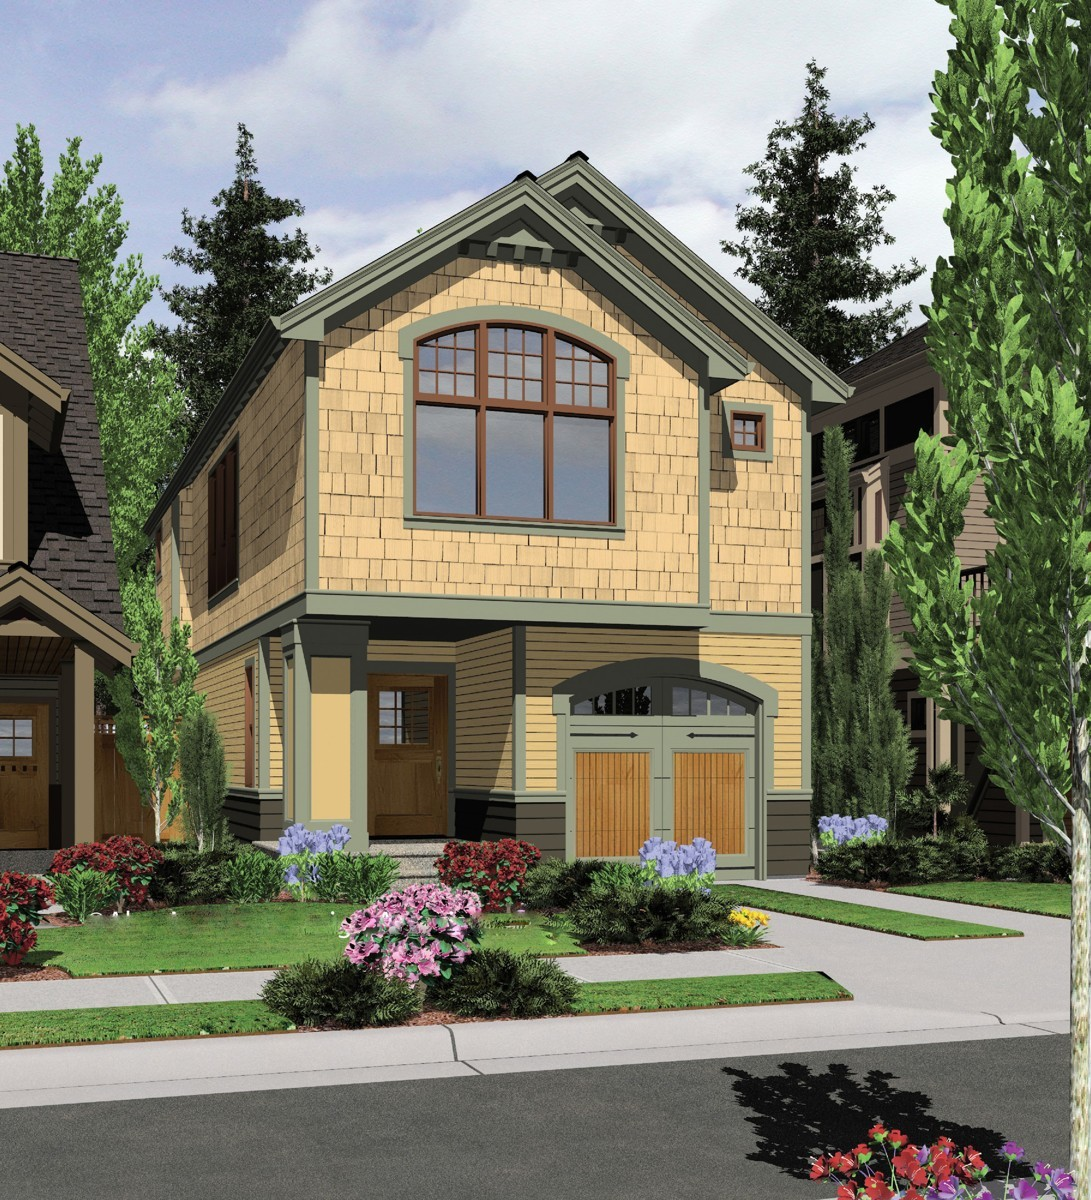 A Charming Home Plan For A Narrow Lot 6992am